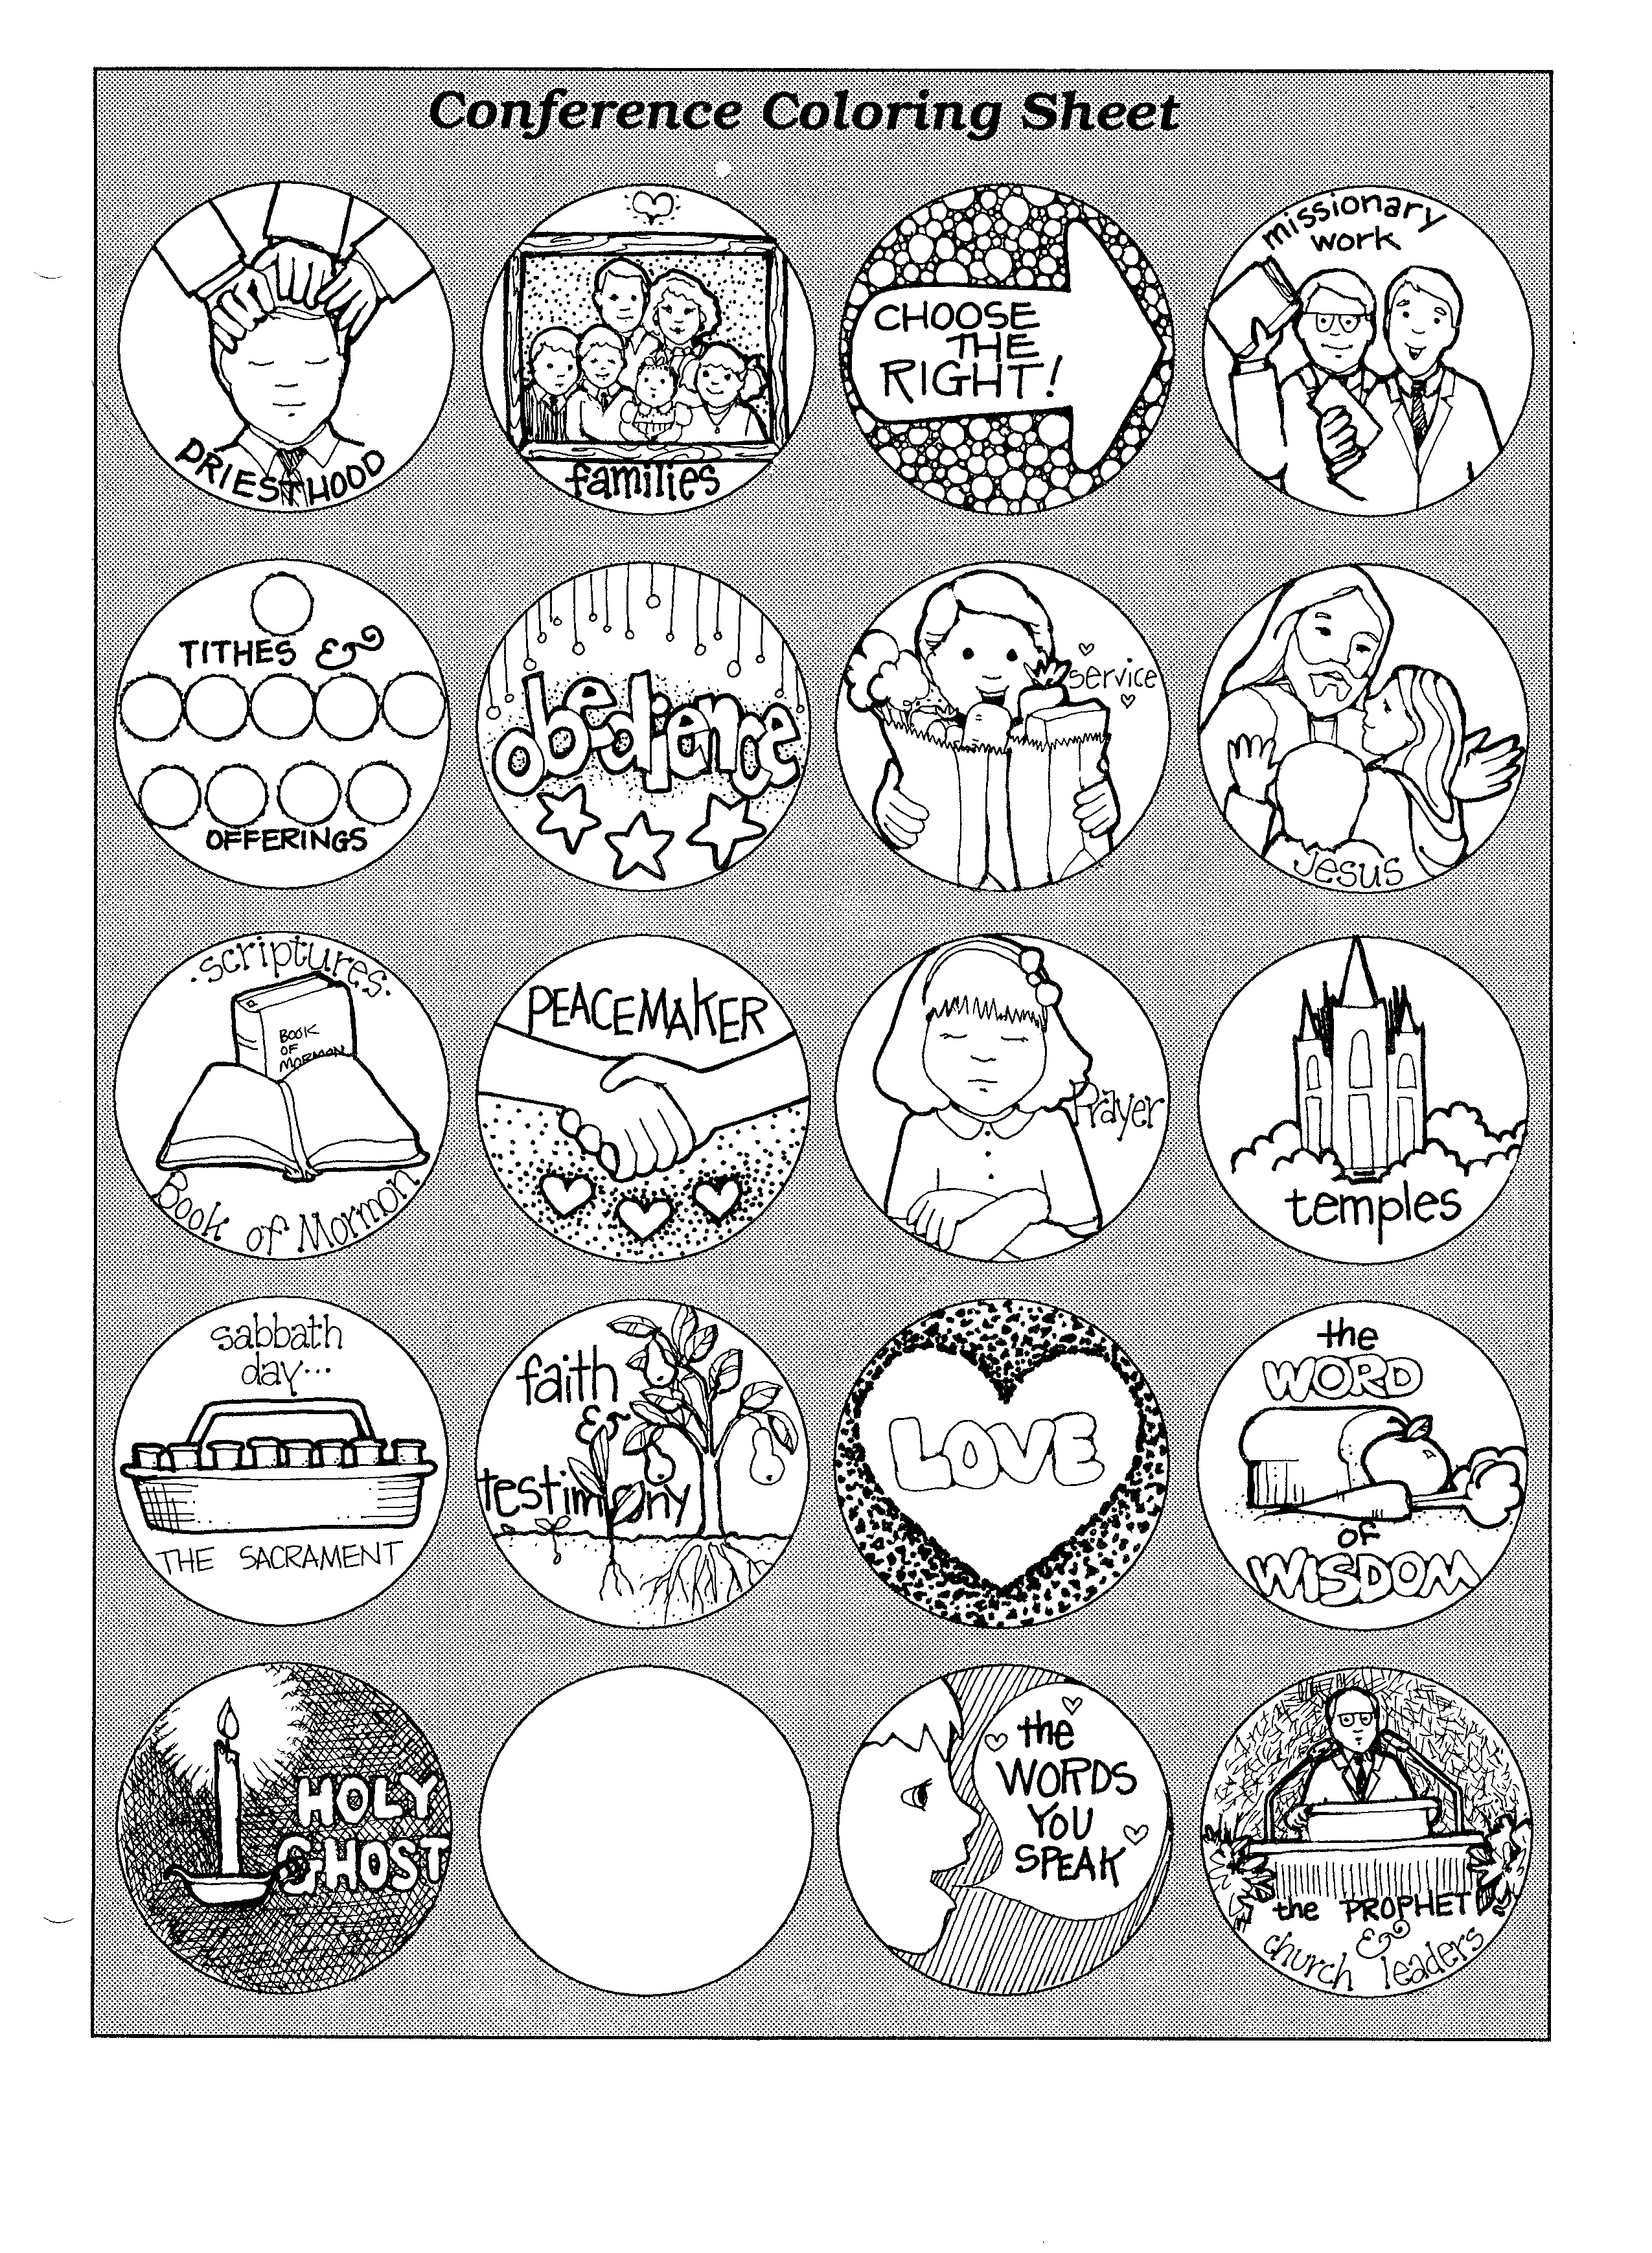 general conference coloring pages - general conference coloring page